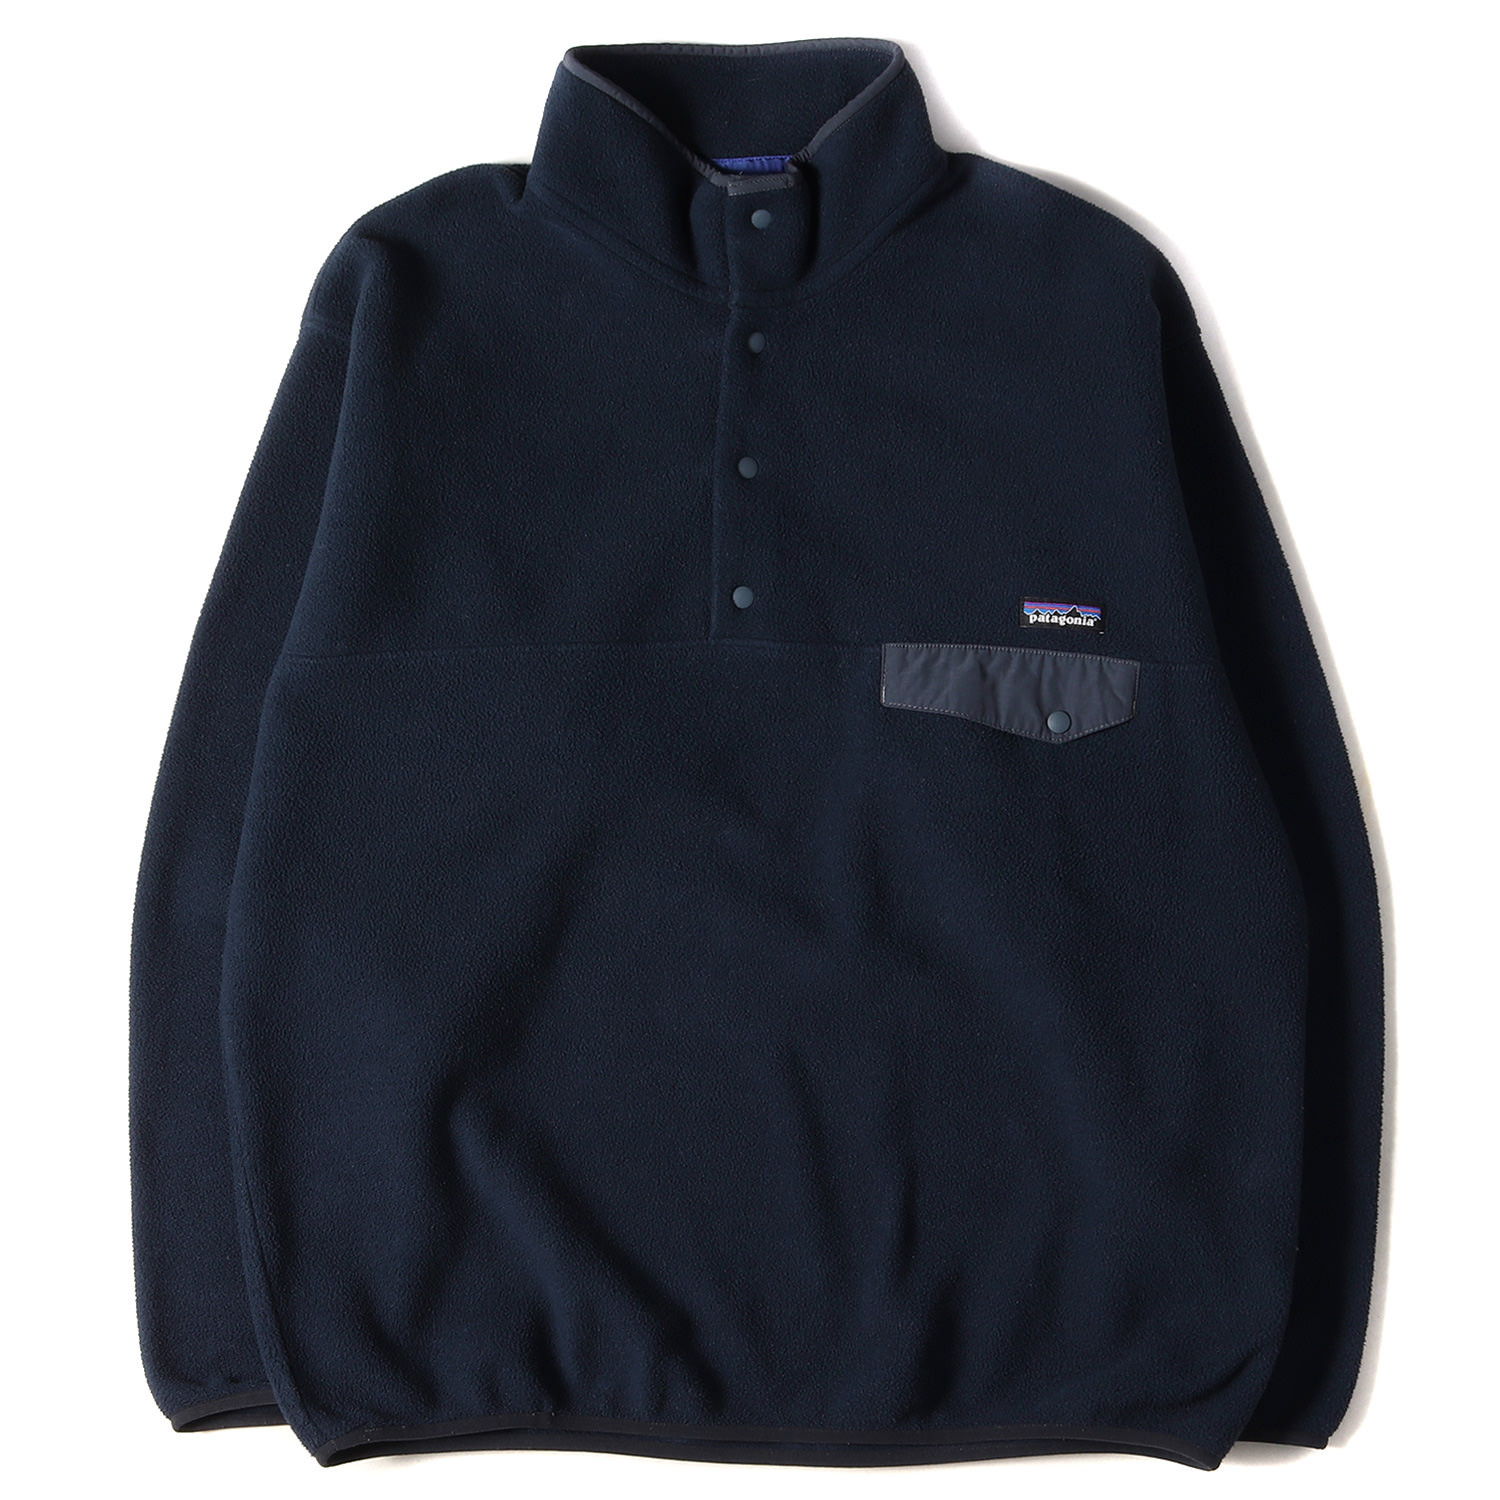 15AW シンチラフリーススナップT(Lightweight Synchilla Snap-T Pullover)